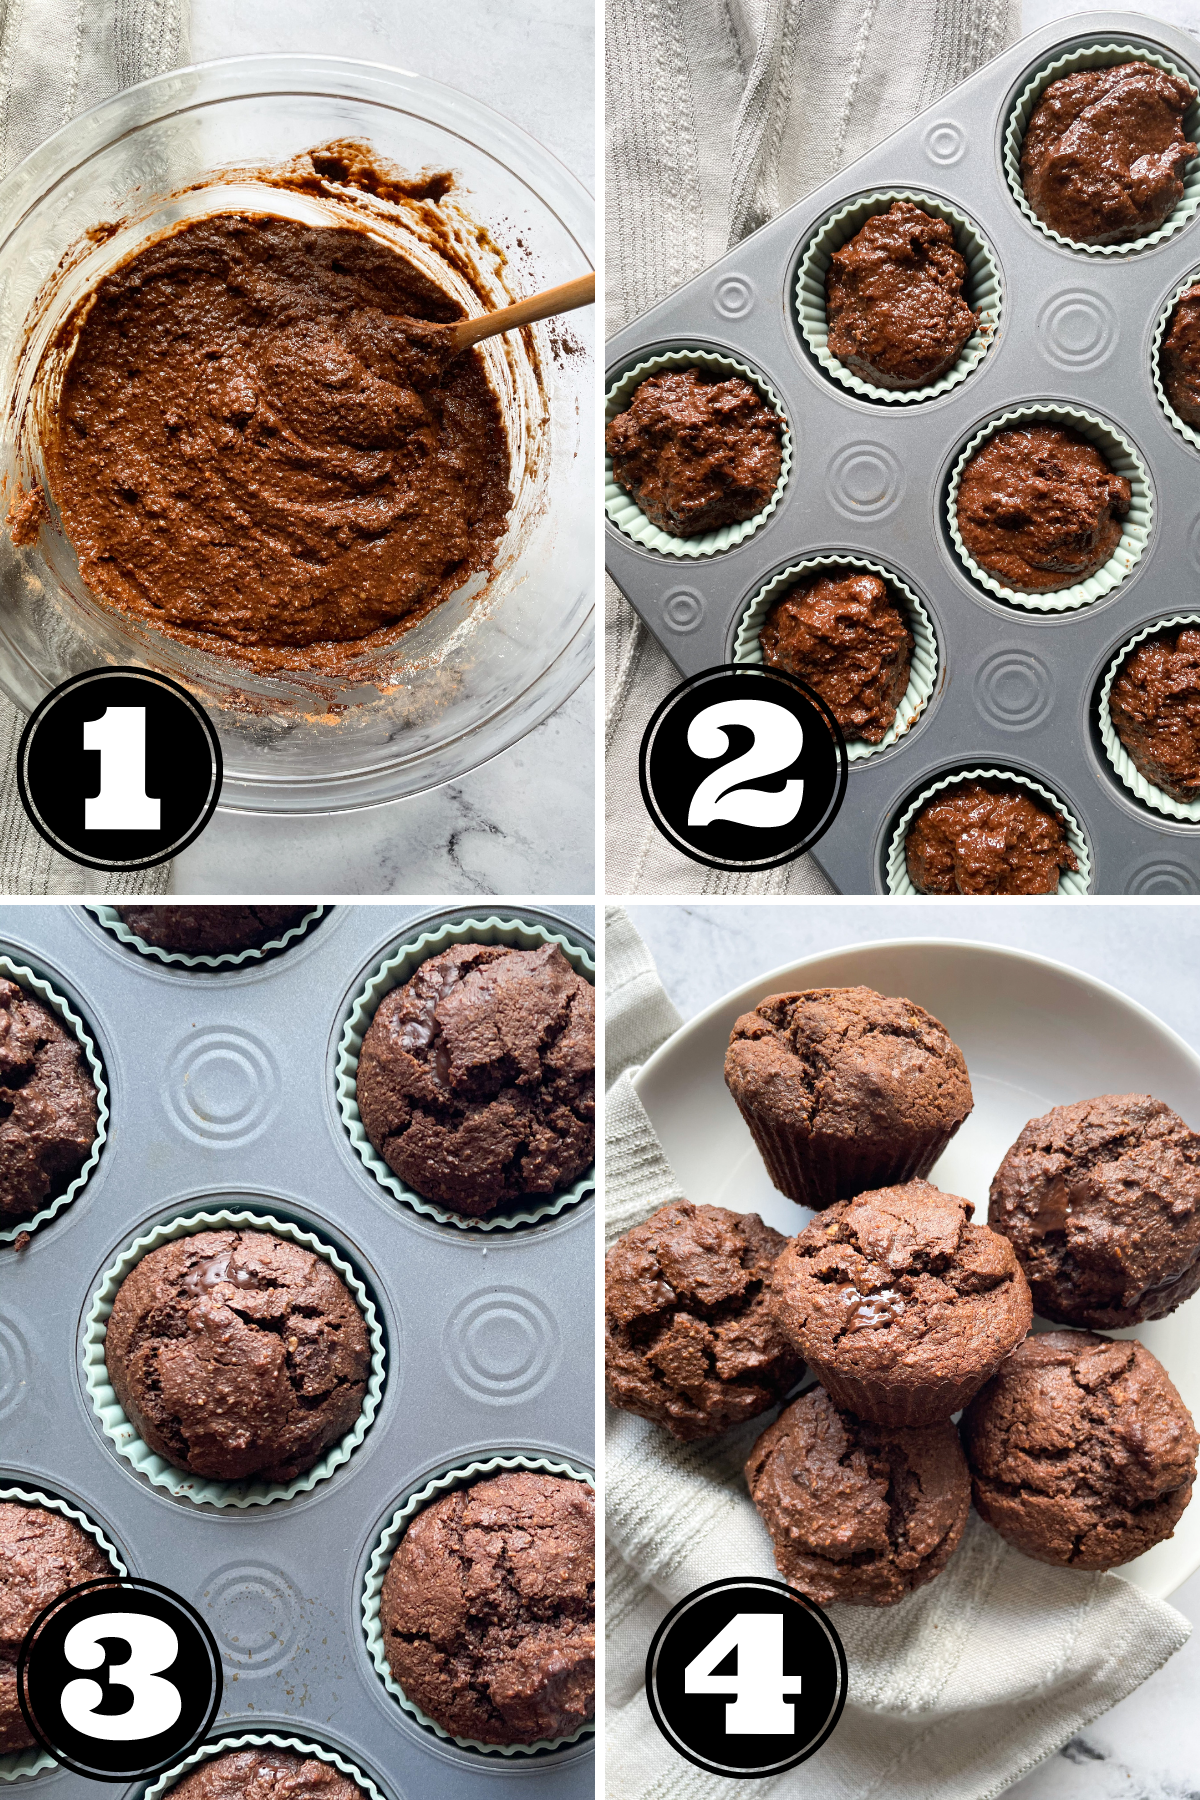 4 step process photo showing how to make healthy chocolate muffins